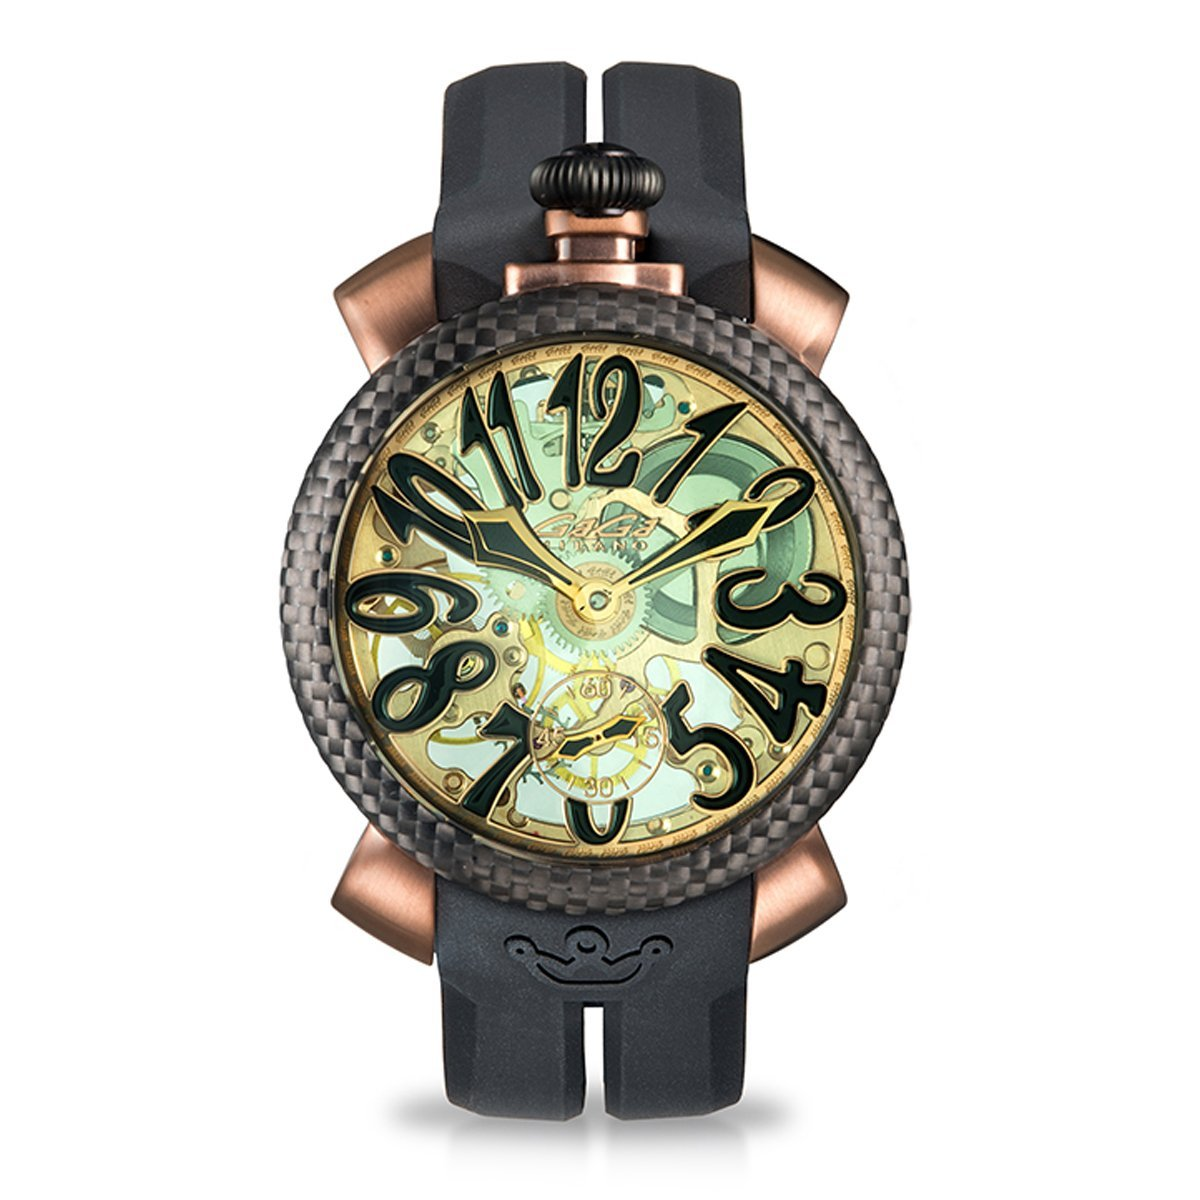 GaGà Milano Skeleton 48MM Coffee PVD - Watches & Crystals